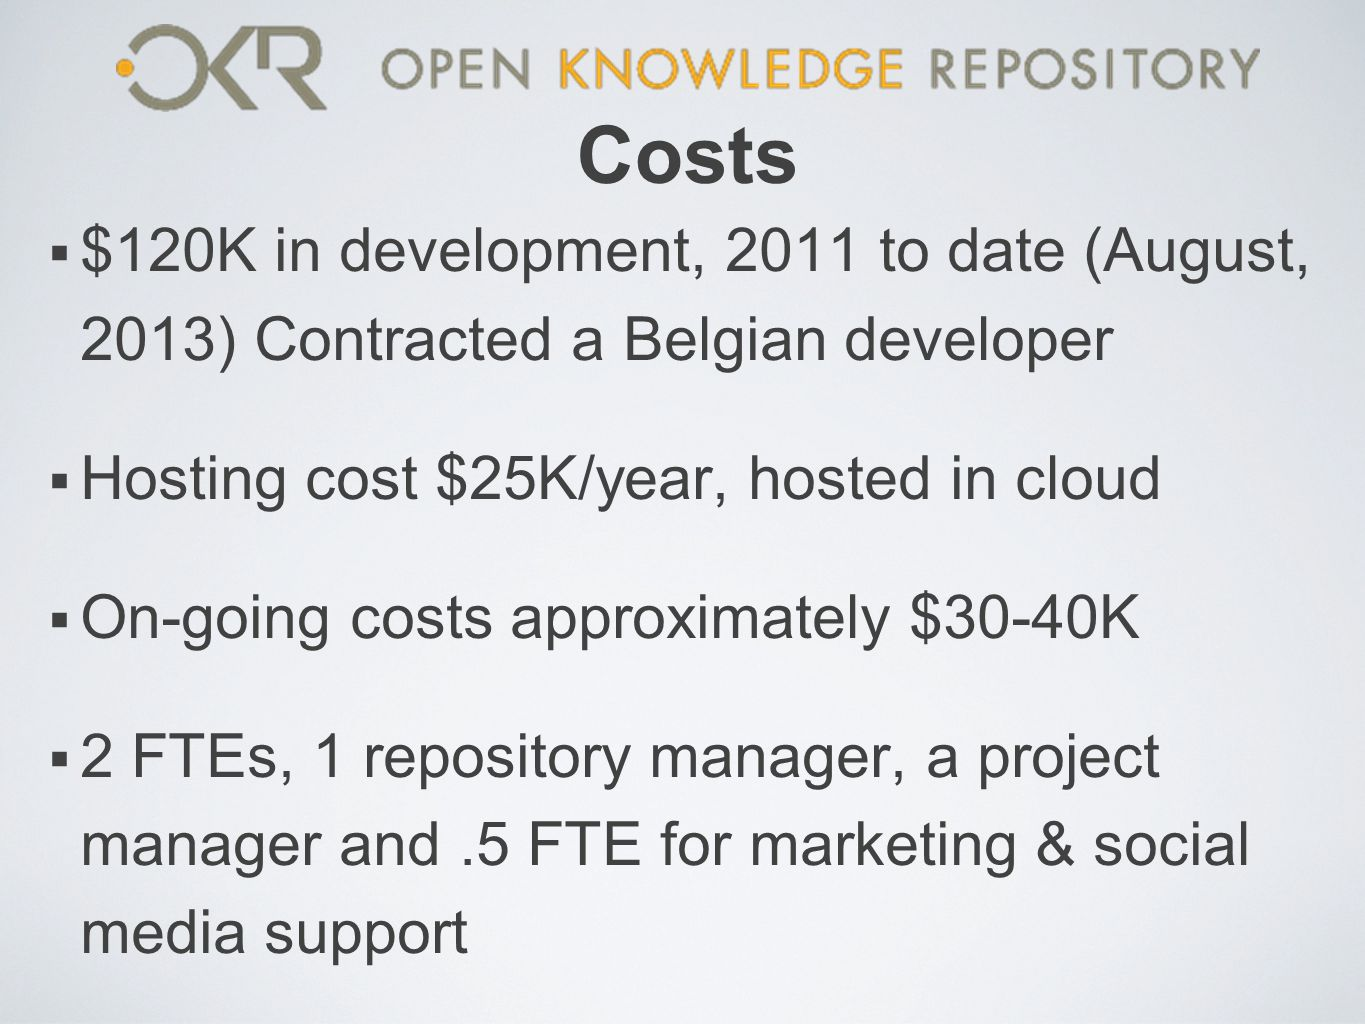 Costs $120K in development, 2011 to date (August, 2013) Contracted a Belgian developer. Hosting cost $25K/year, hosted in cloud.